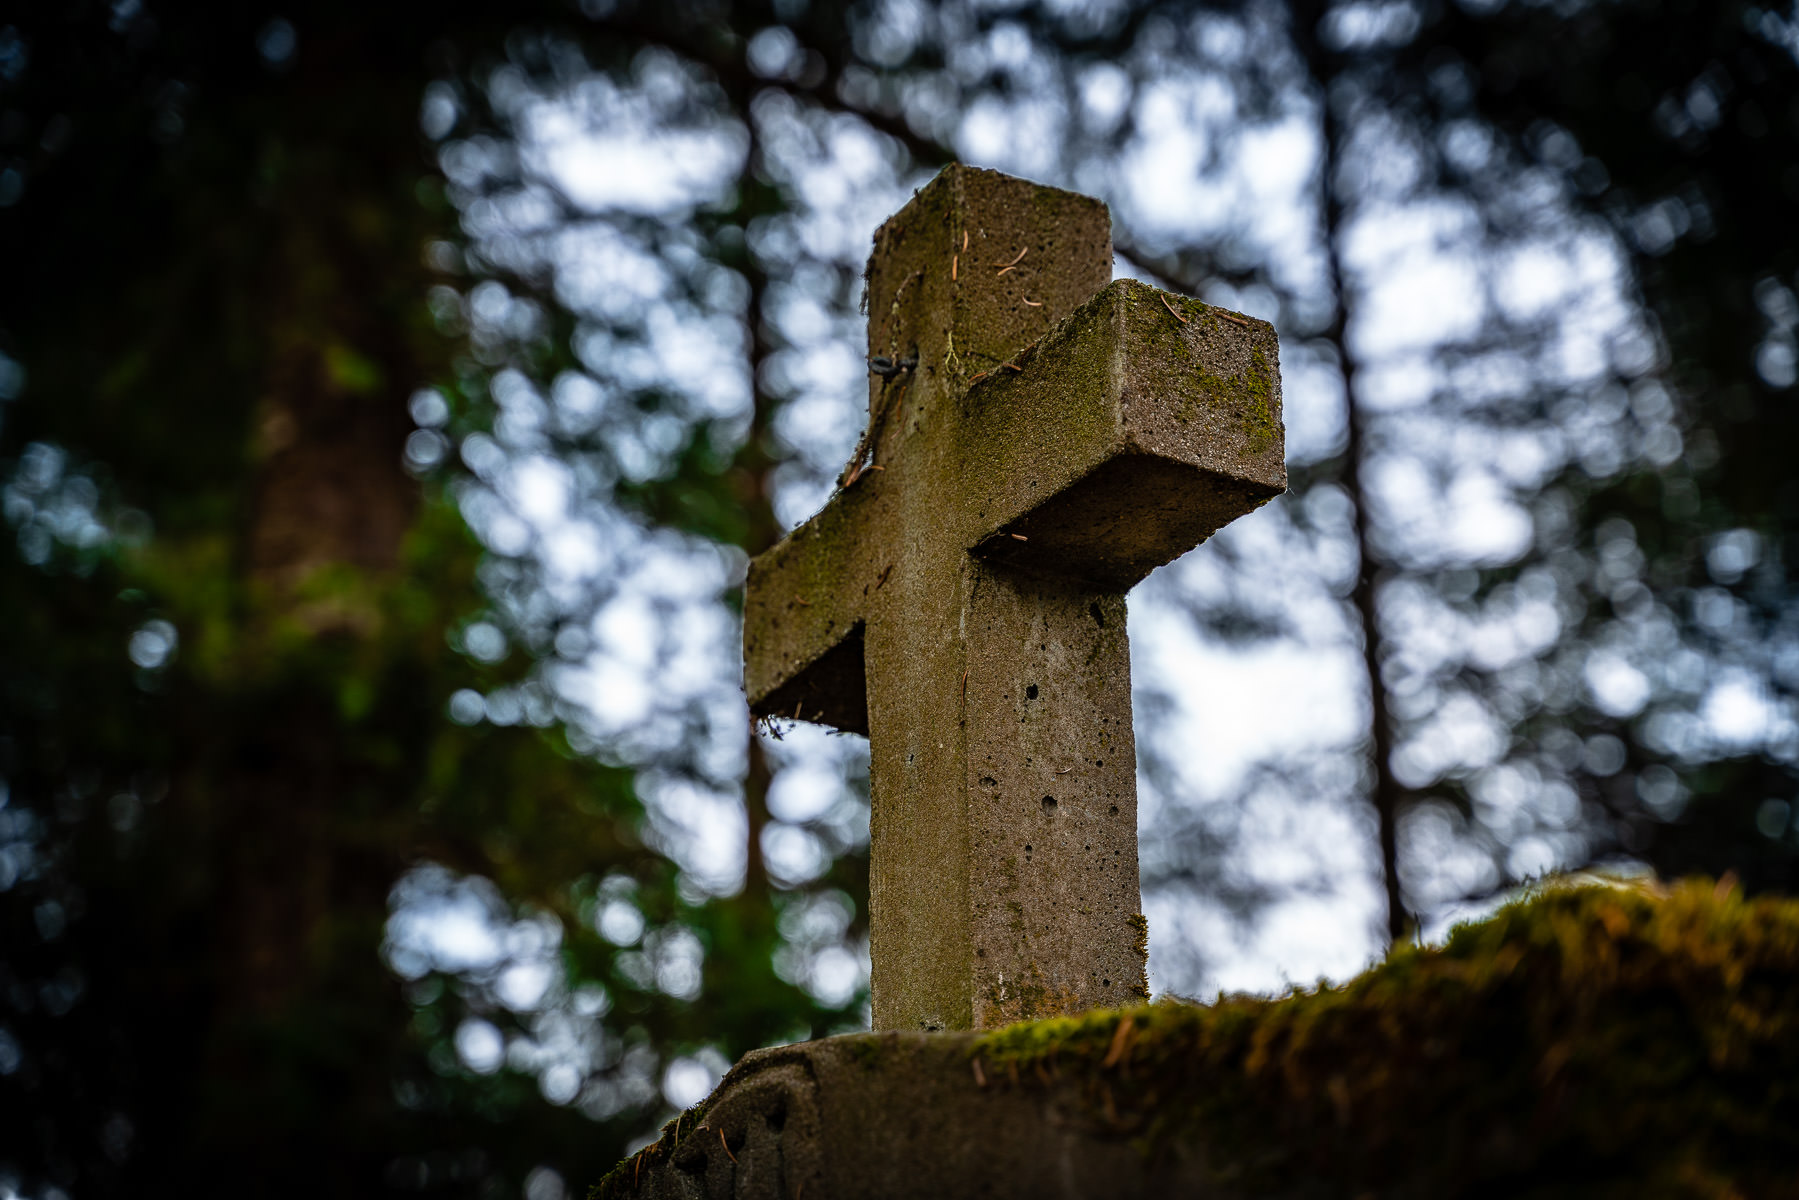 A cross on a monument at the Shrine of Saint Thérèse near Juneau, Alaska.